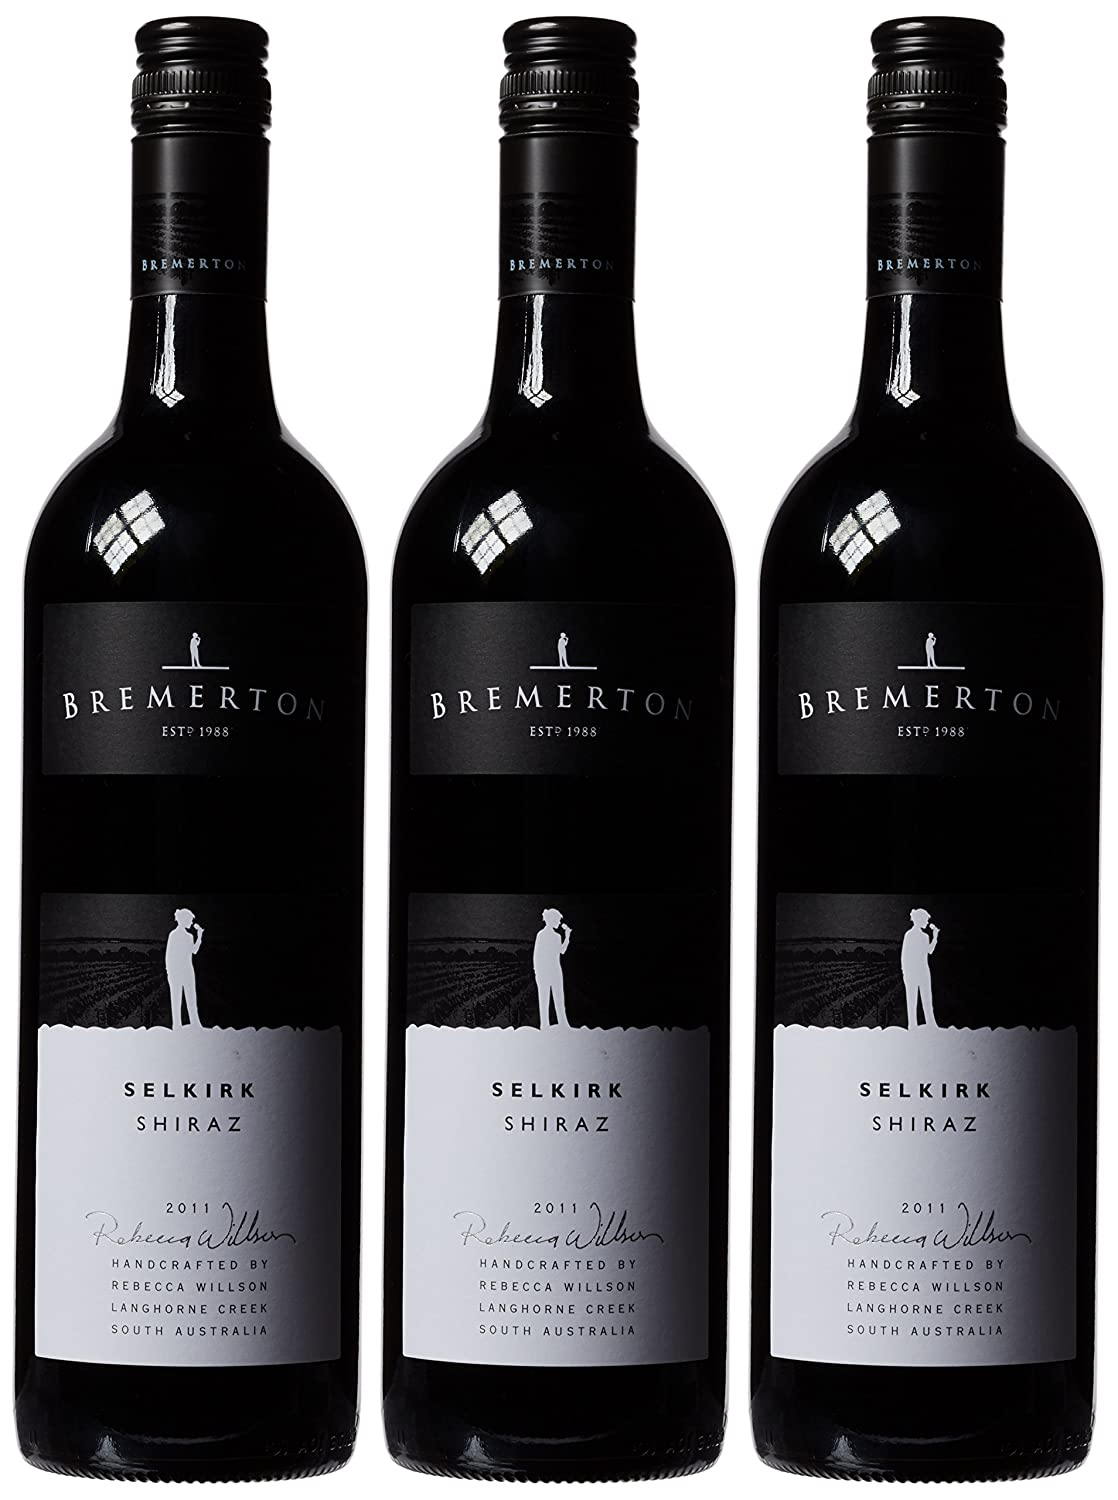 Bremerton Selkirk Shiraz 2015 Wine 75cl (Case of 3)